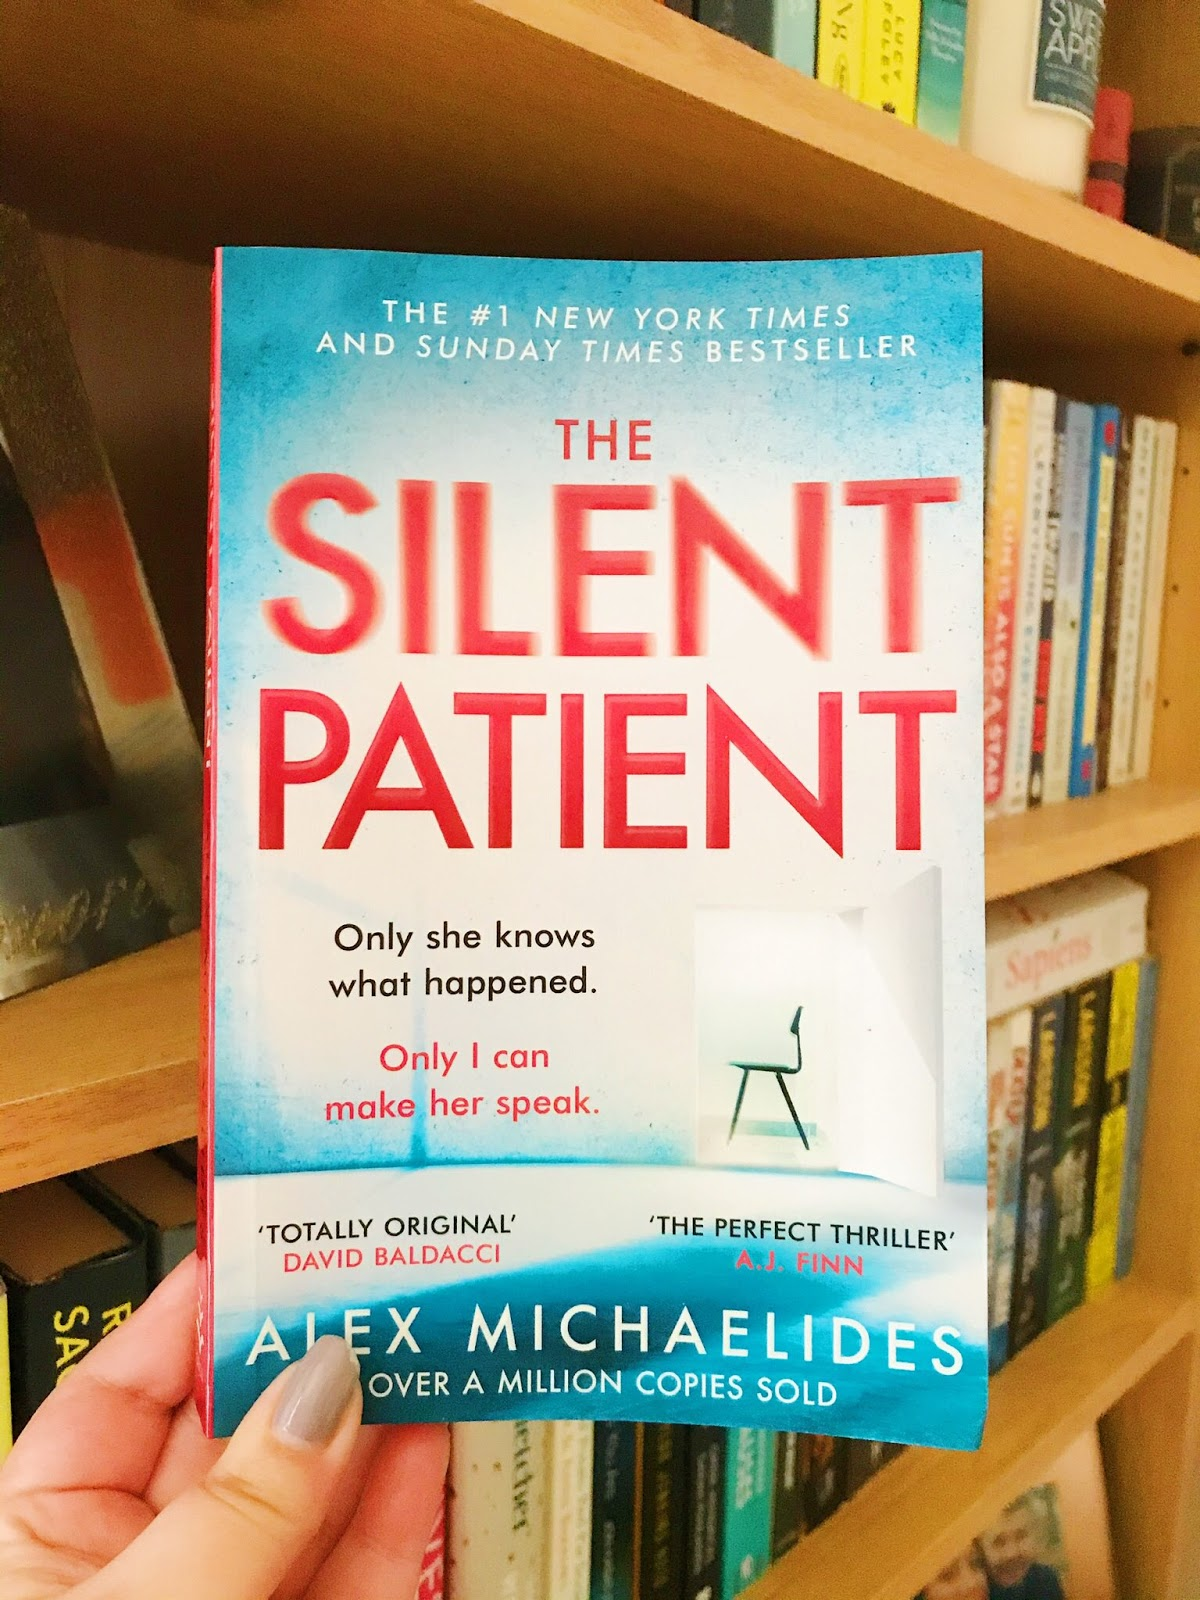 The Silent Patient book held up in front of bookshelf